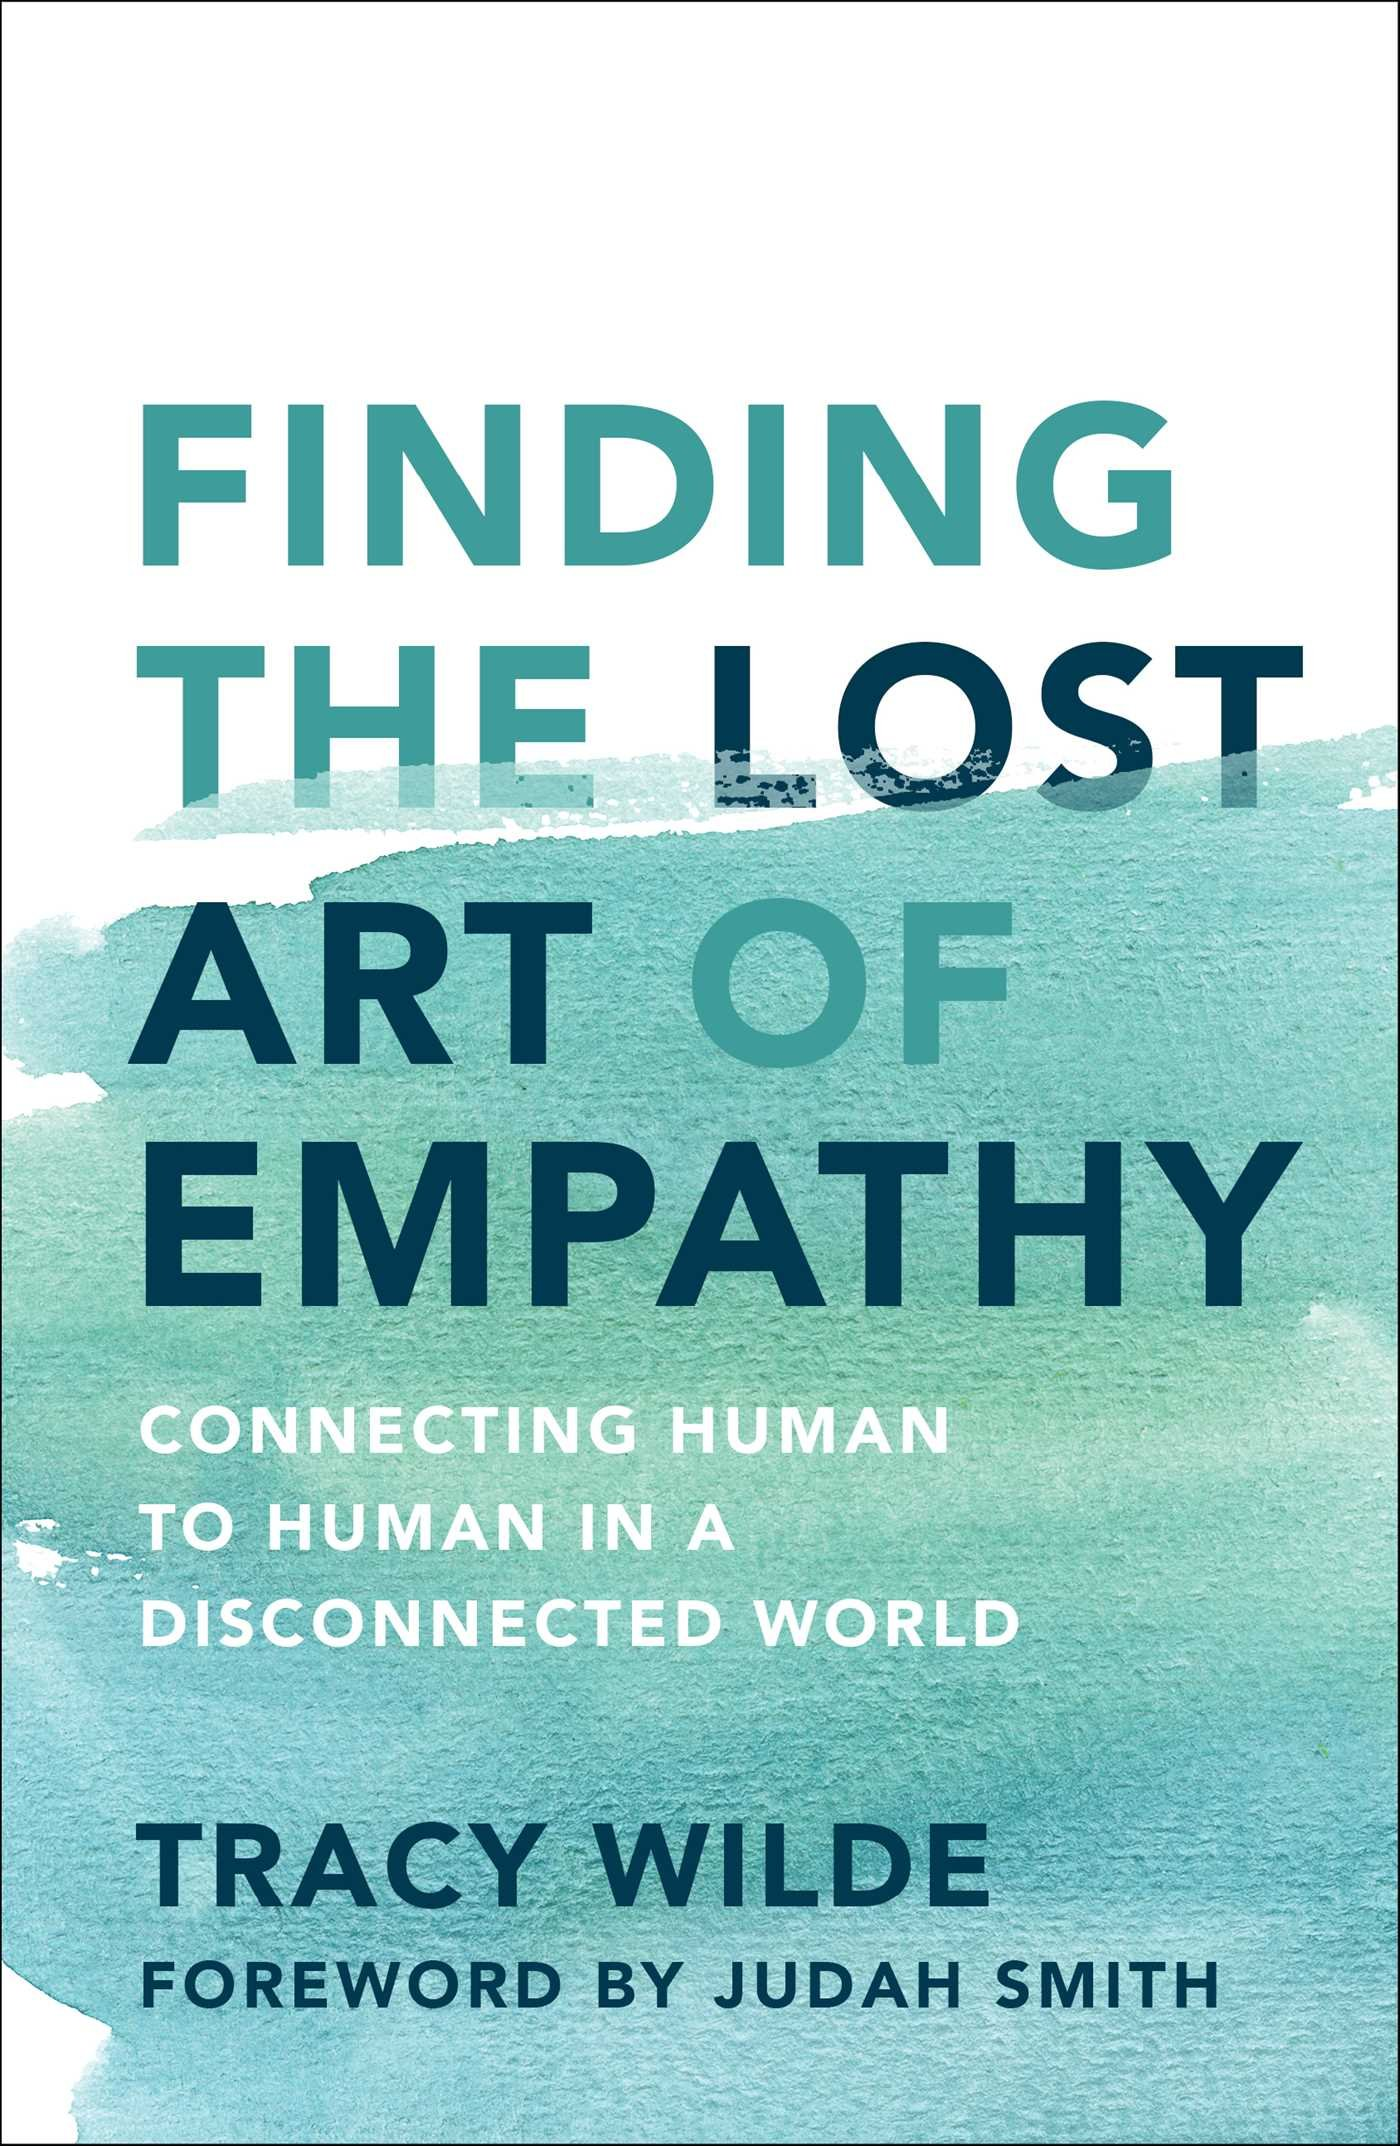 Finding the Lost Art of Empathy: Connecting Human to Human in a Disconnected World by Simon & Schuster